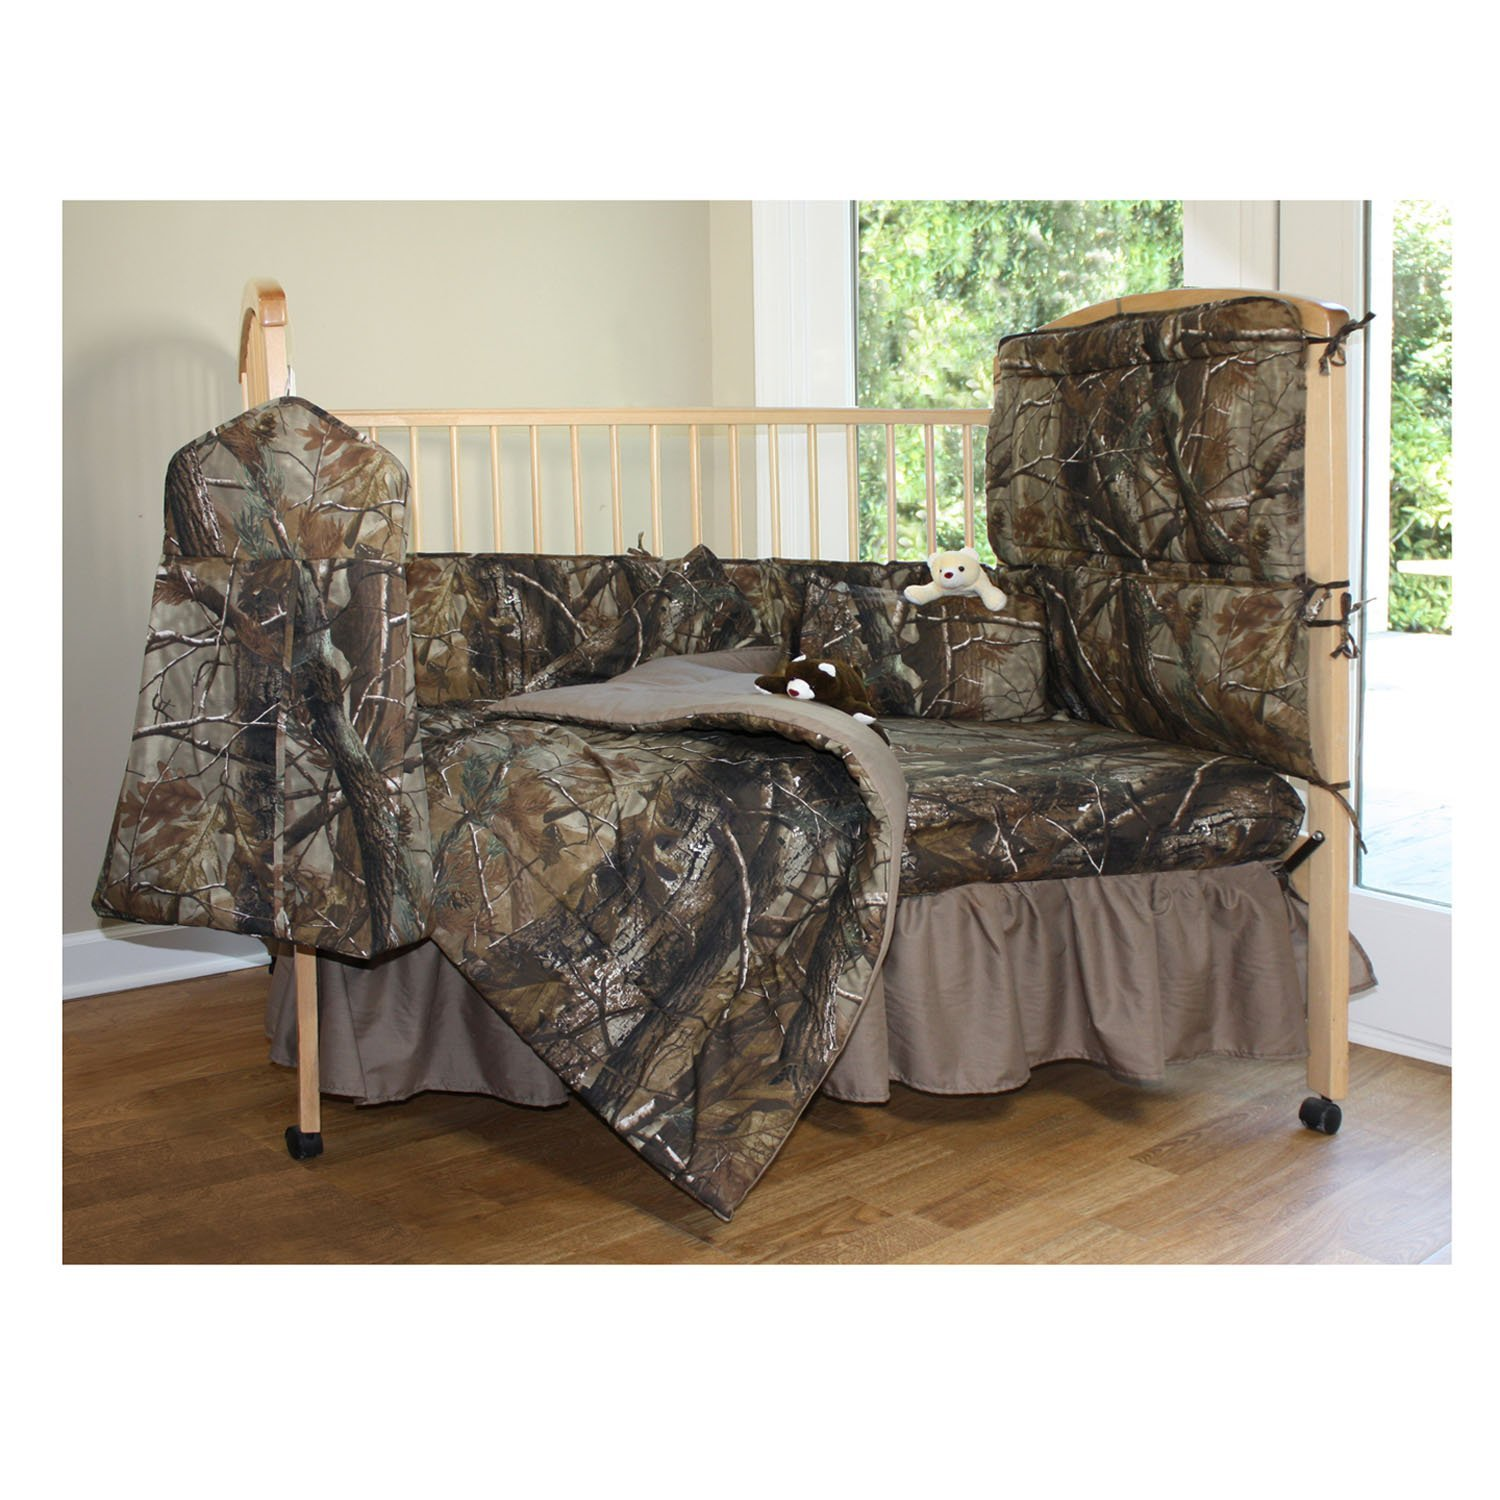 Camo toddler bed sets - Camo Nursery Crib Bedding Sets For Baby Boys Girls